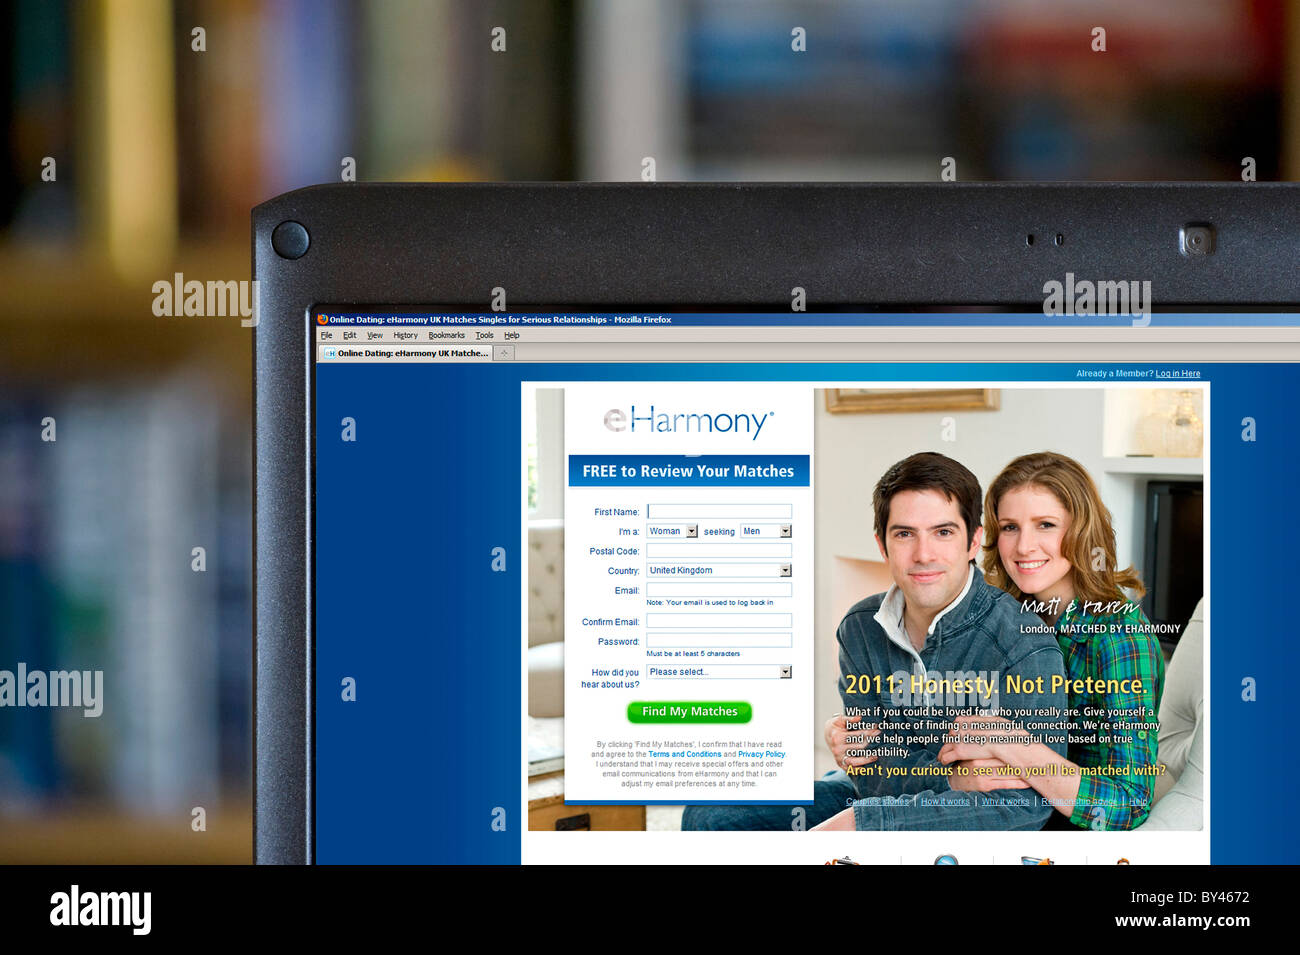 Eharmony offers uk